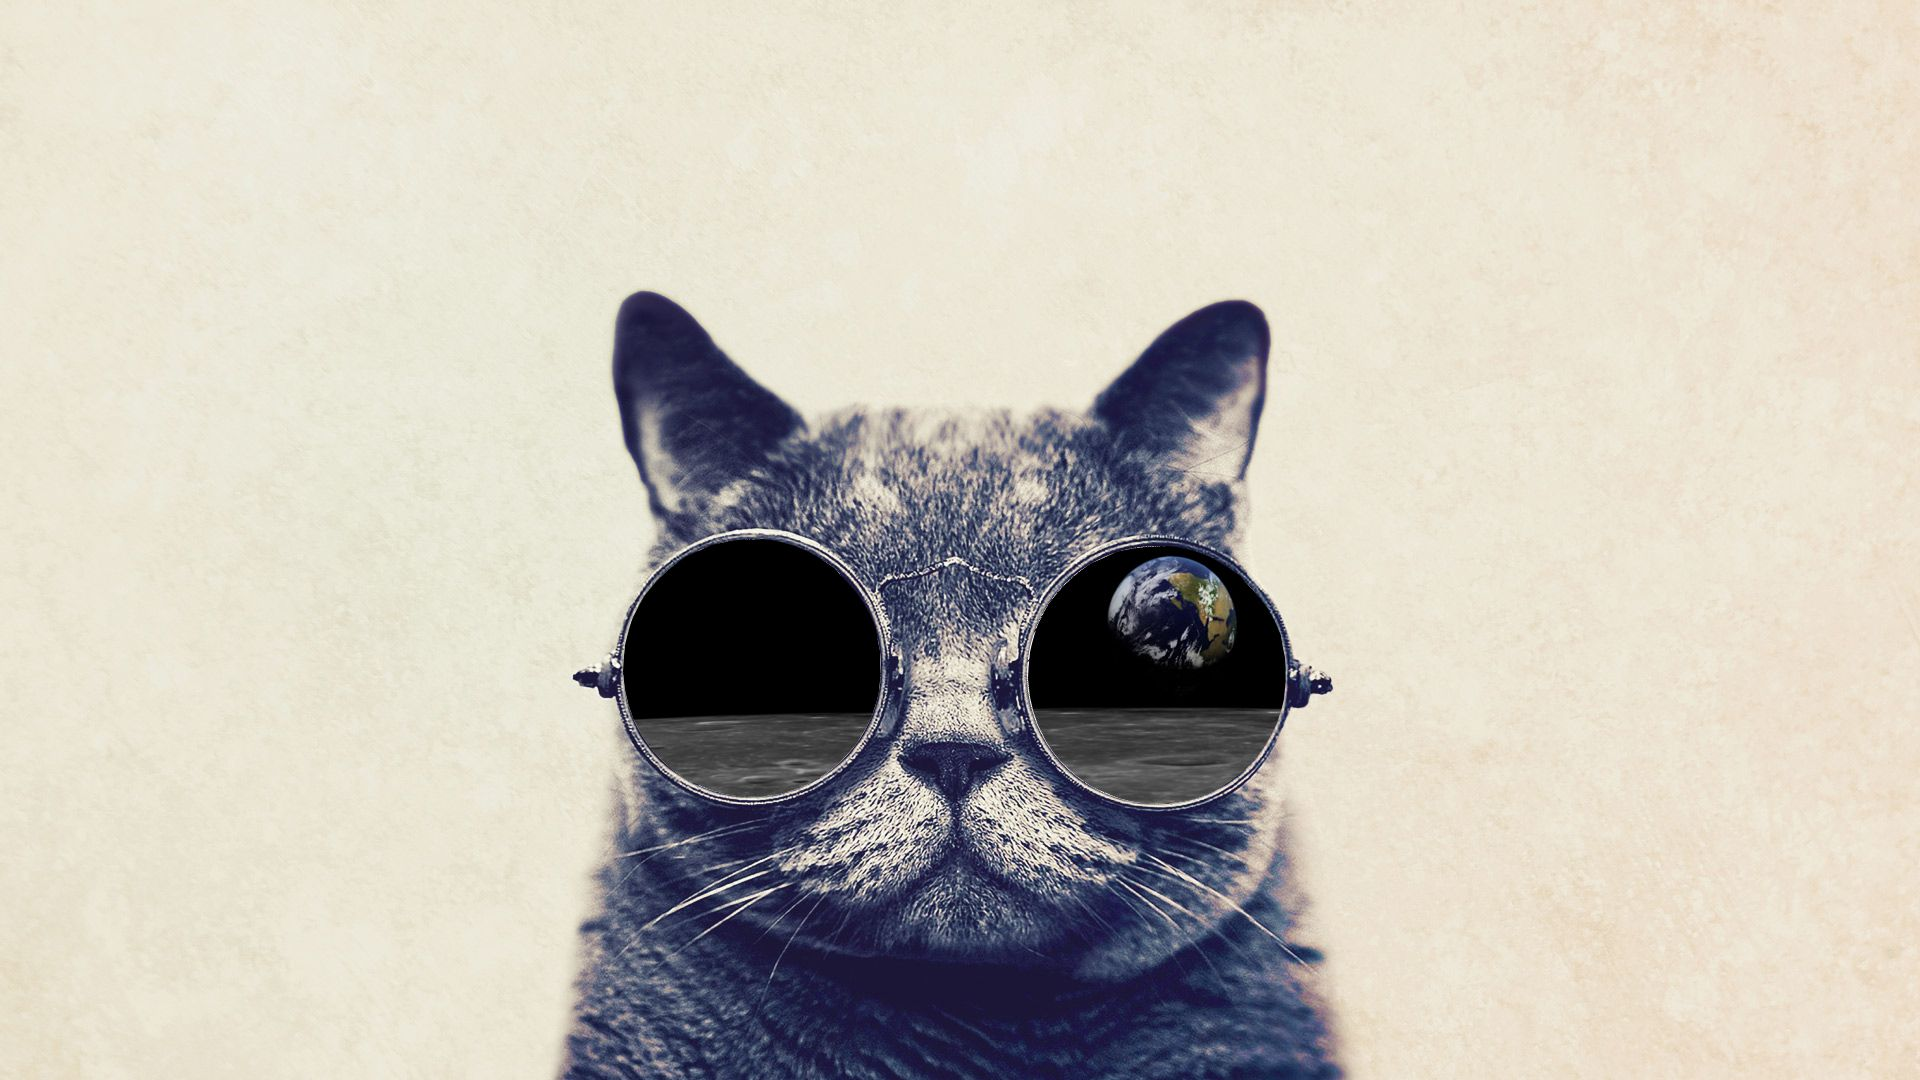 Funny Cat With Big Glasses wallpaper Techno Pinterest